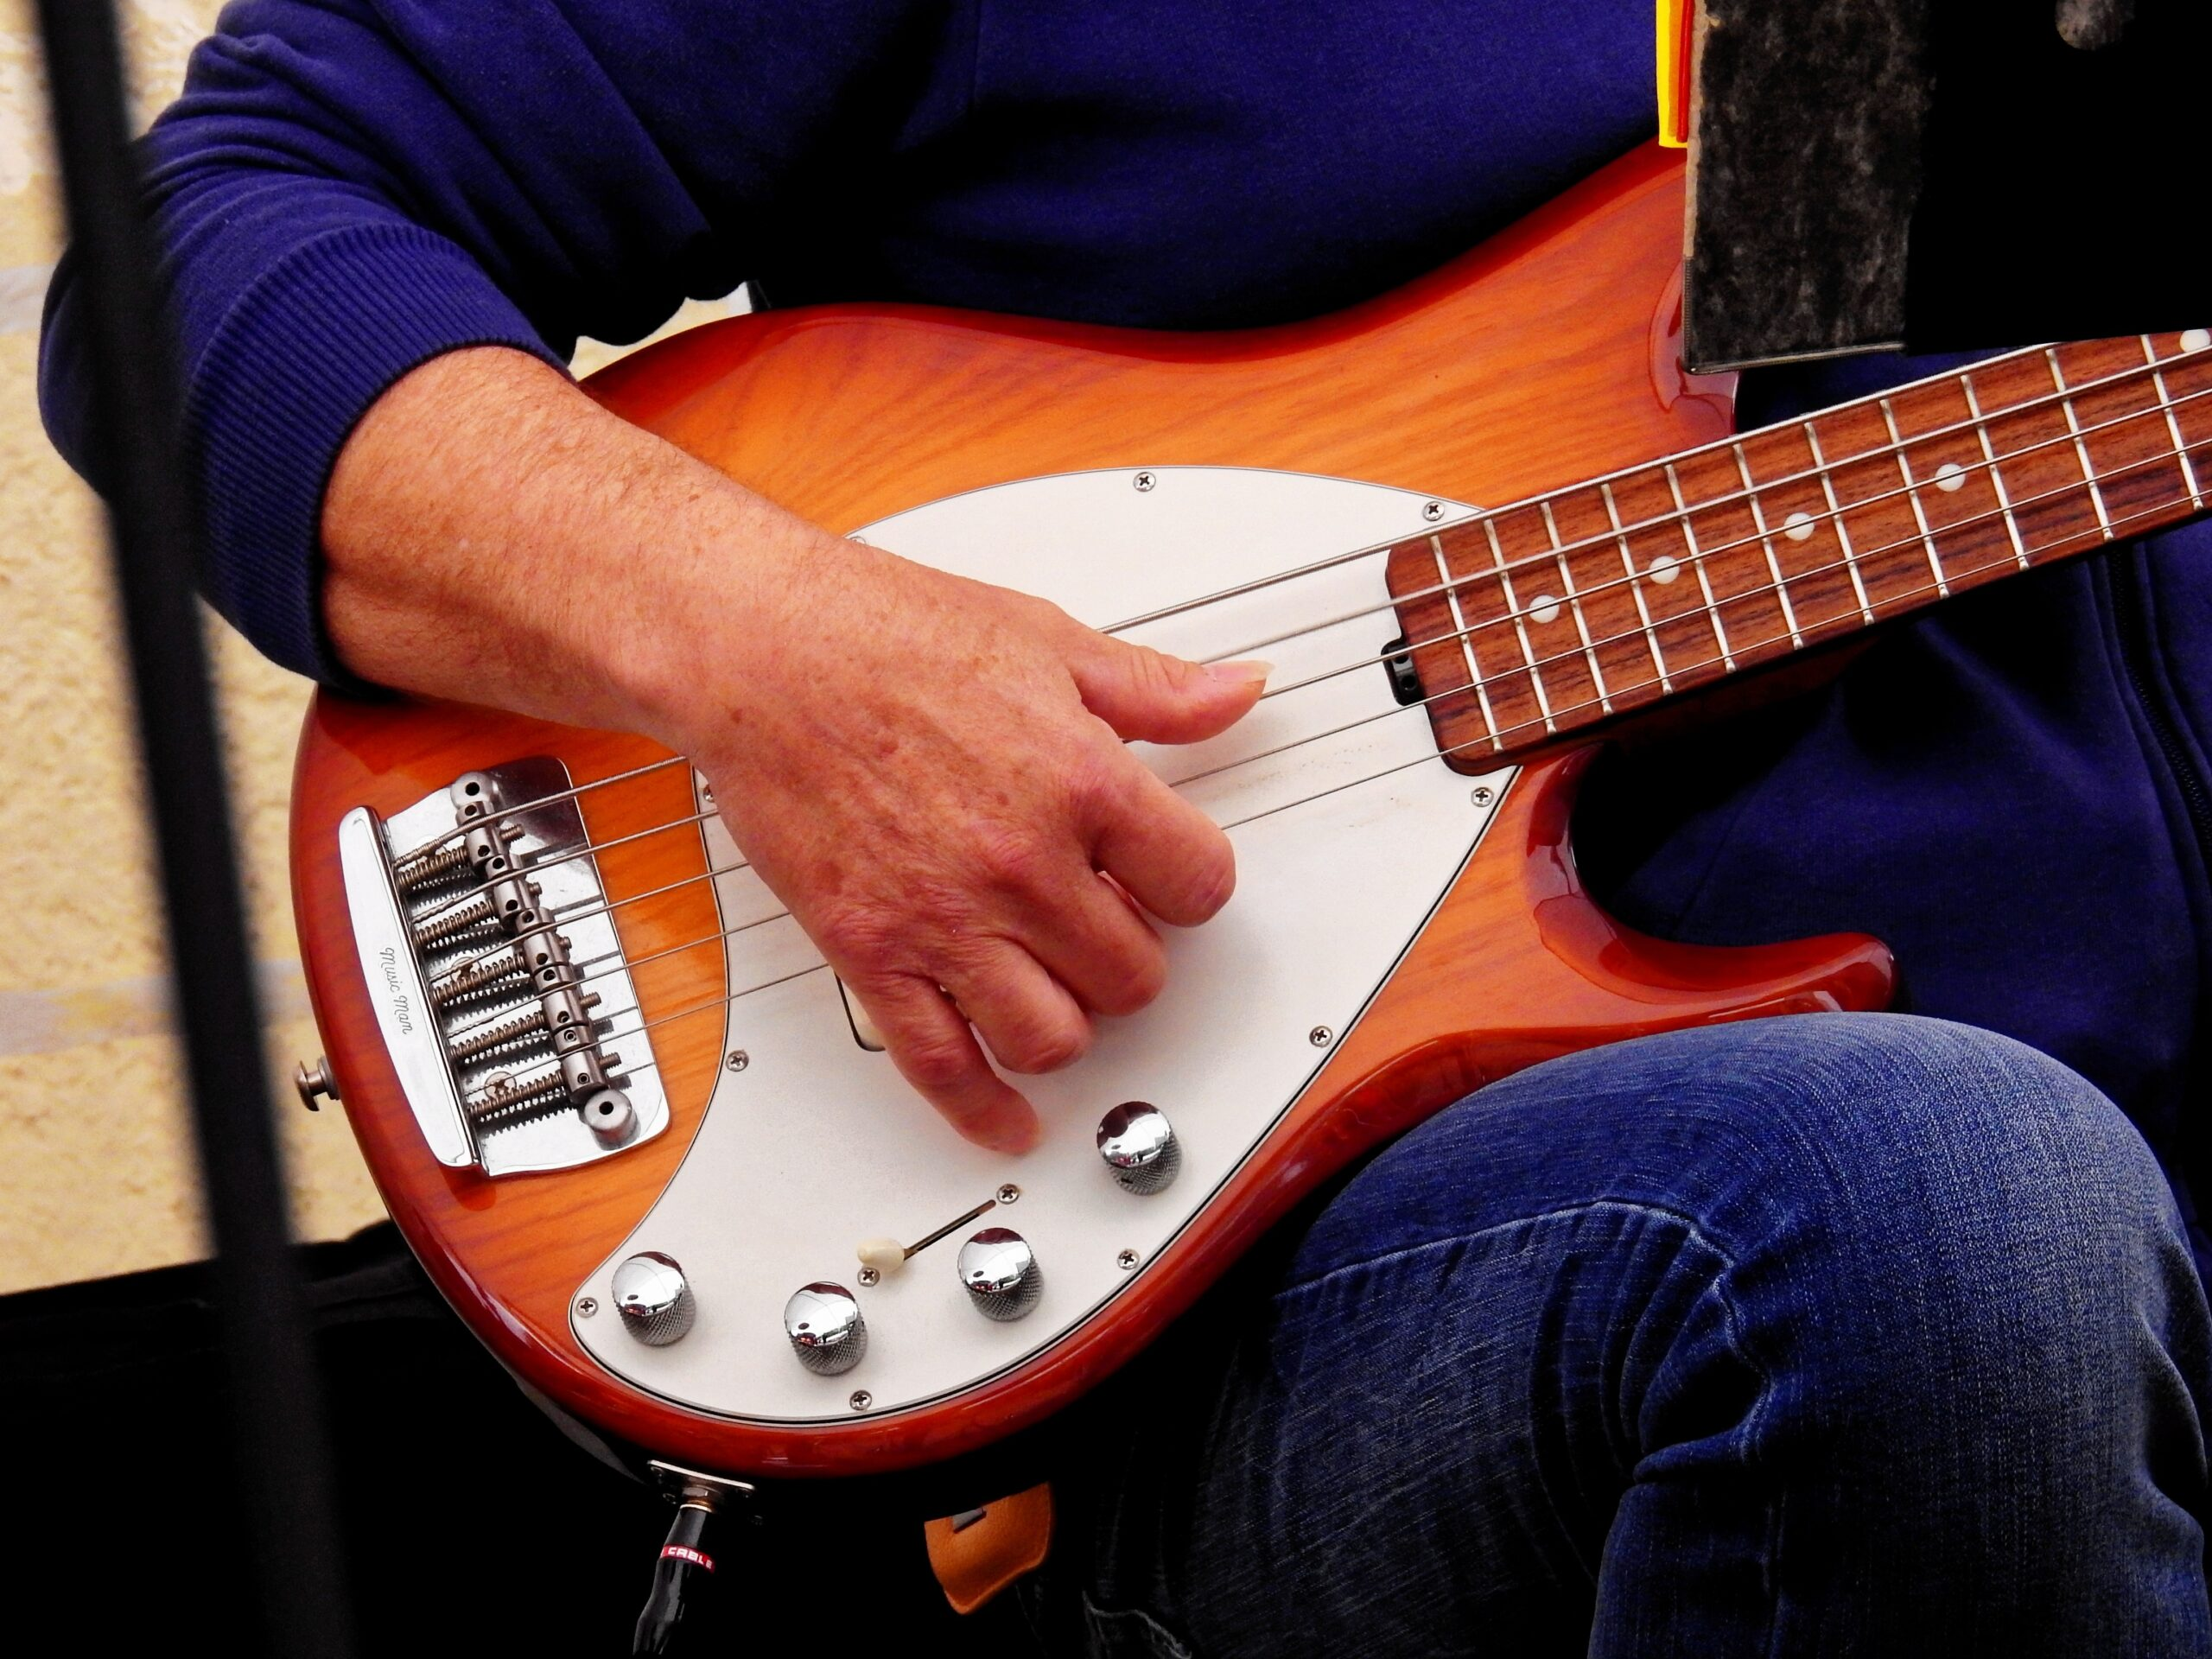 Man Playing Guitar | Bass Guitar for Beginners: A Definitive Guide To Learning